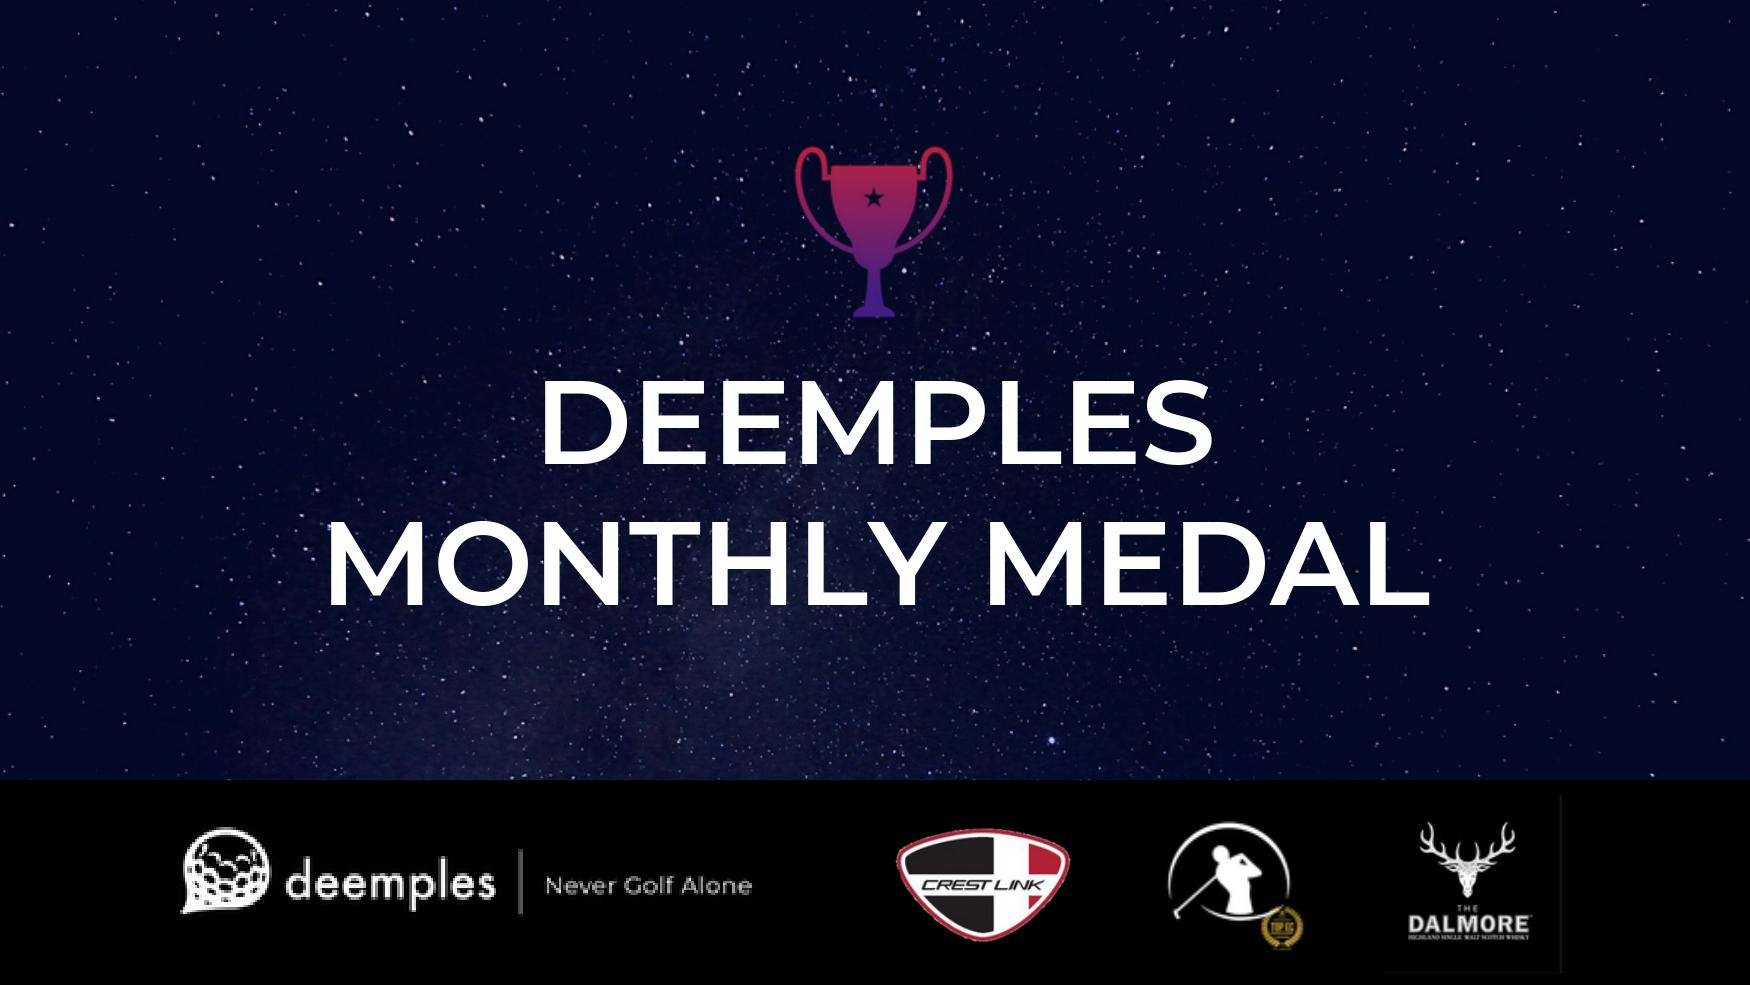 deemples-monthly-medal